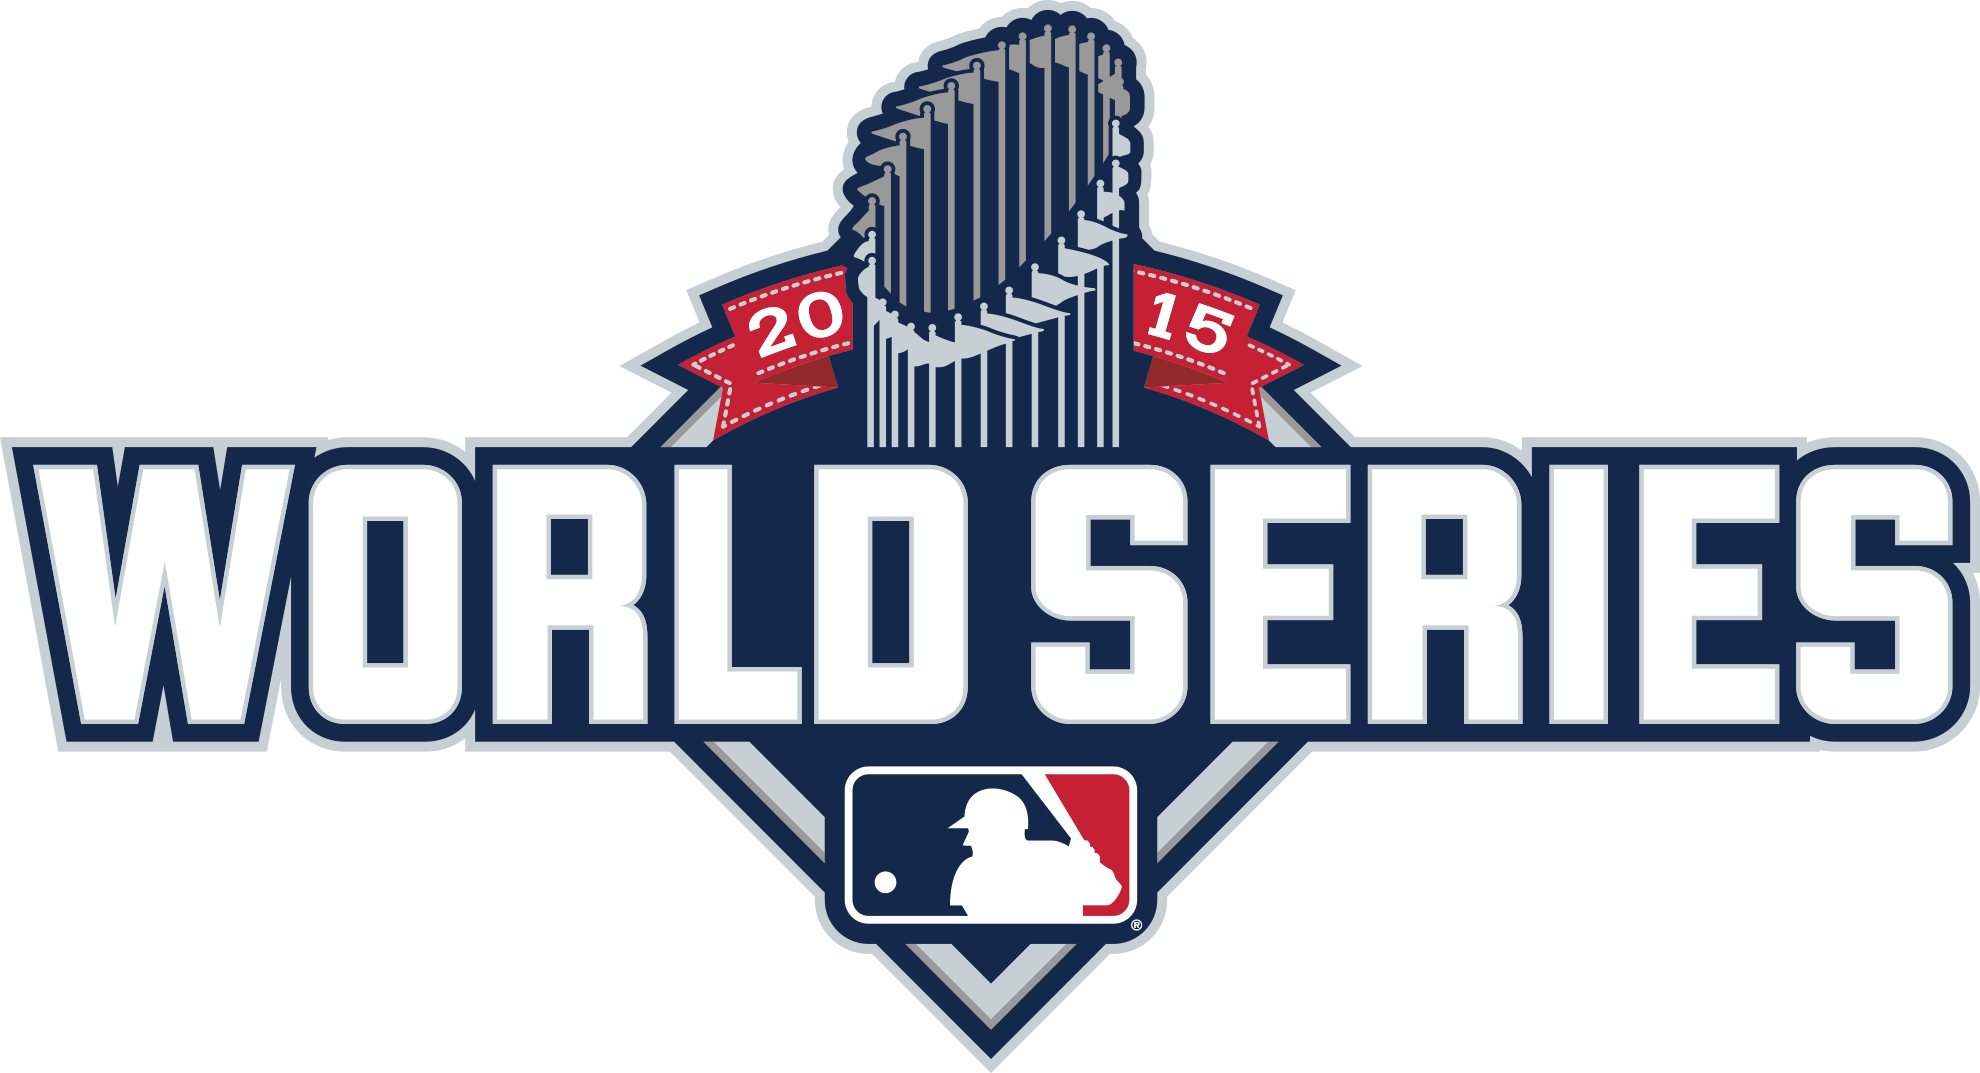 who played in the world series last year